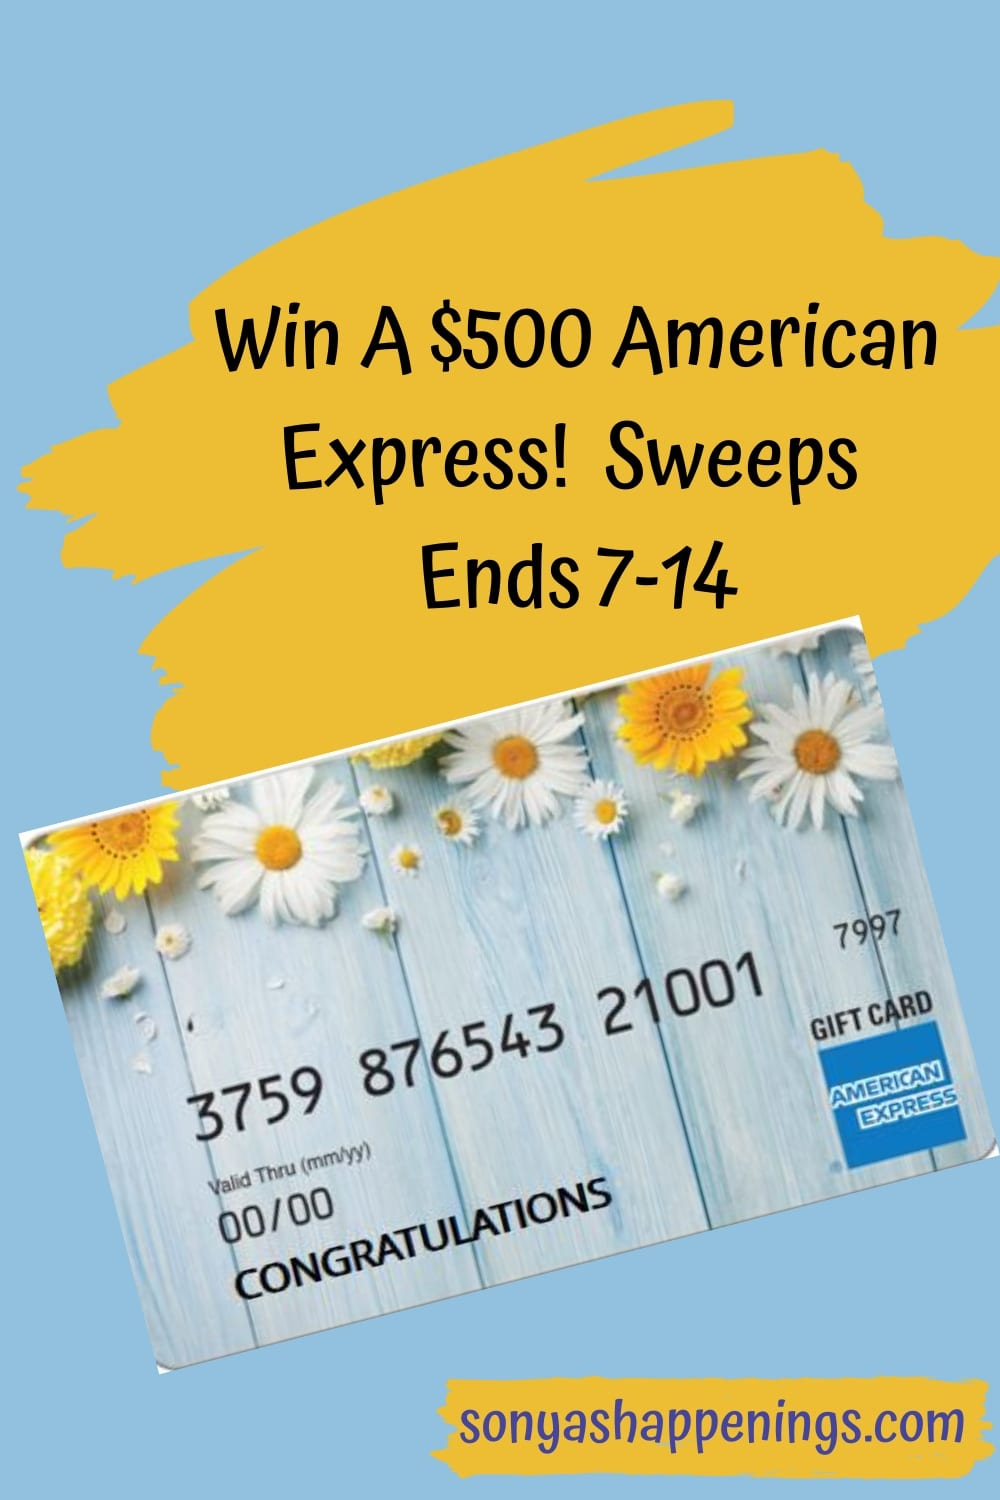 Win a $500 American Express gift card ~ sweeps ends 7-14